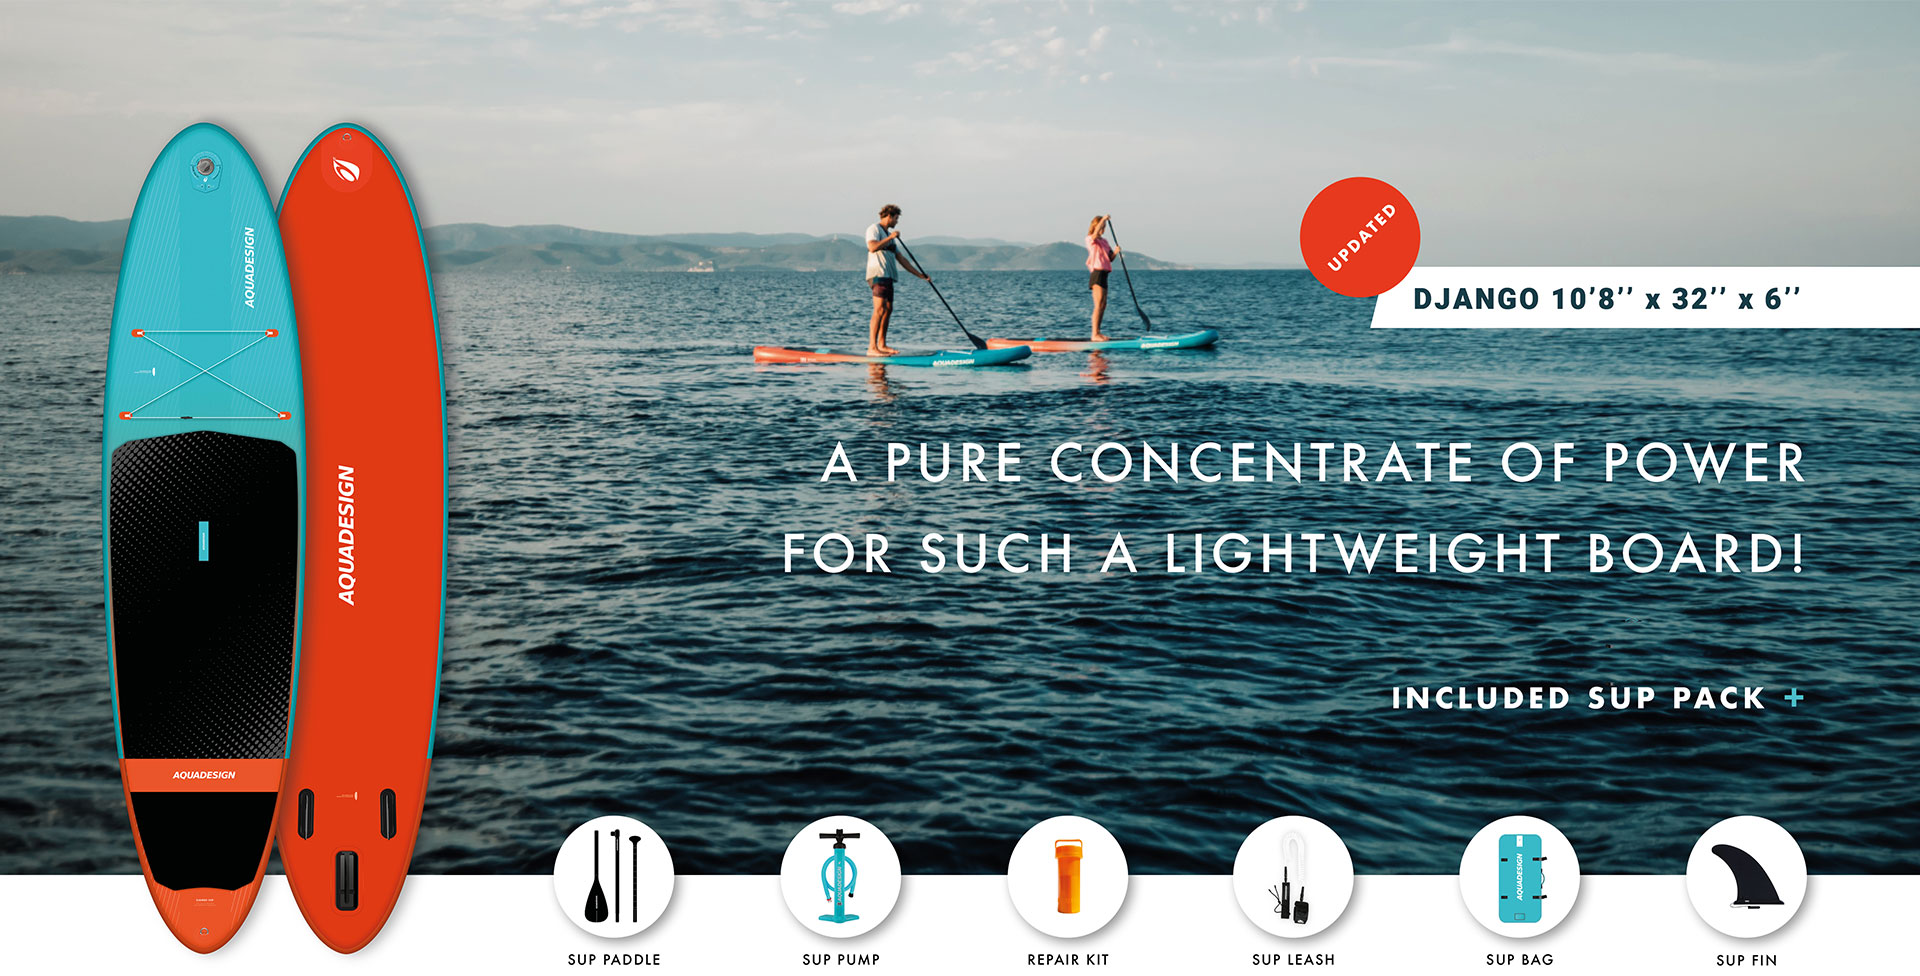 Nouveau Stand Up Paddle Board Aquadesign Django